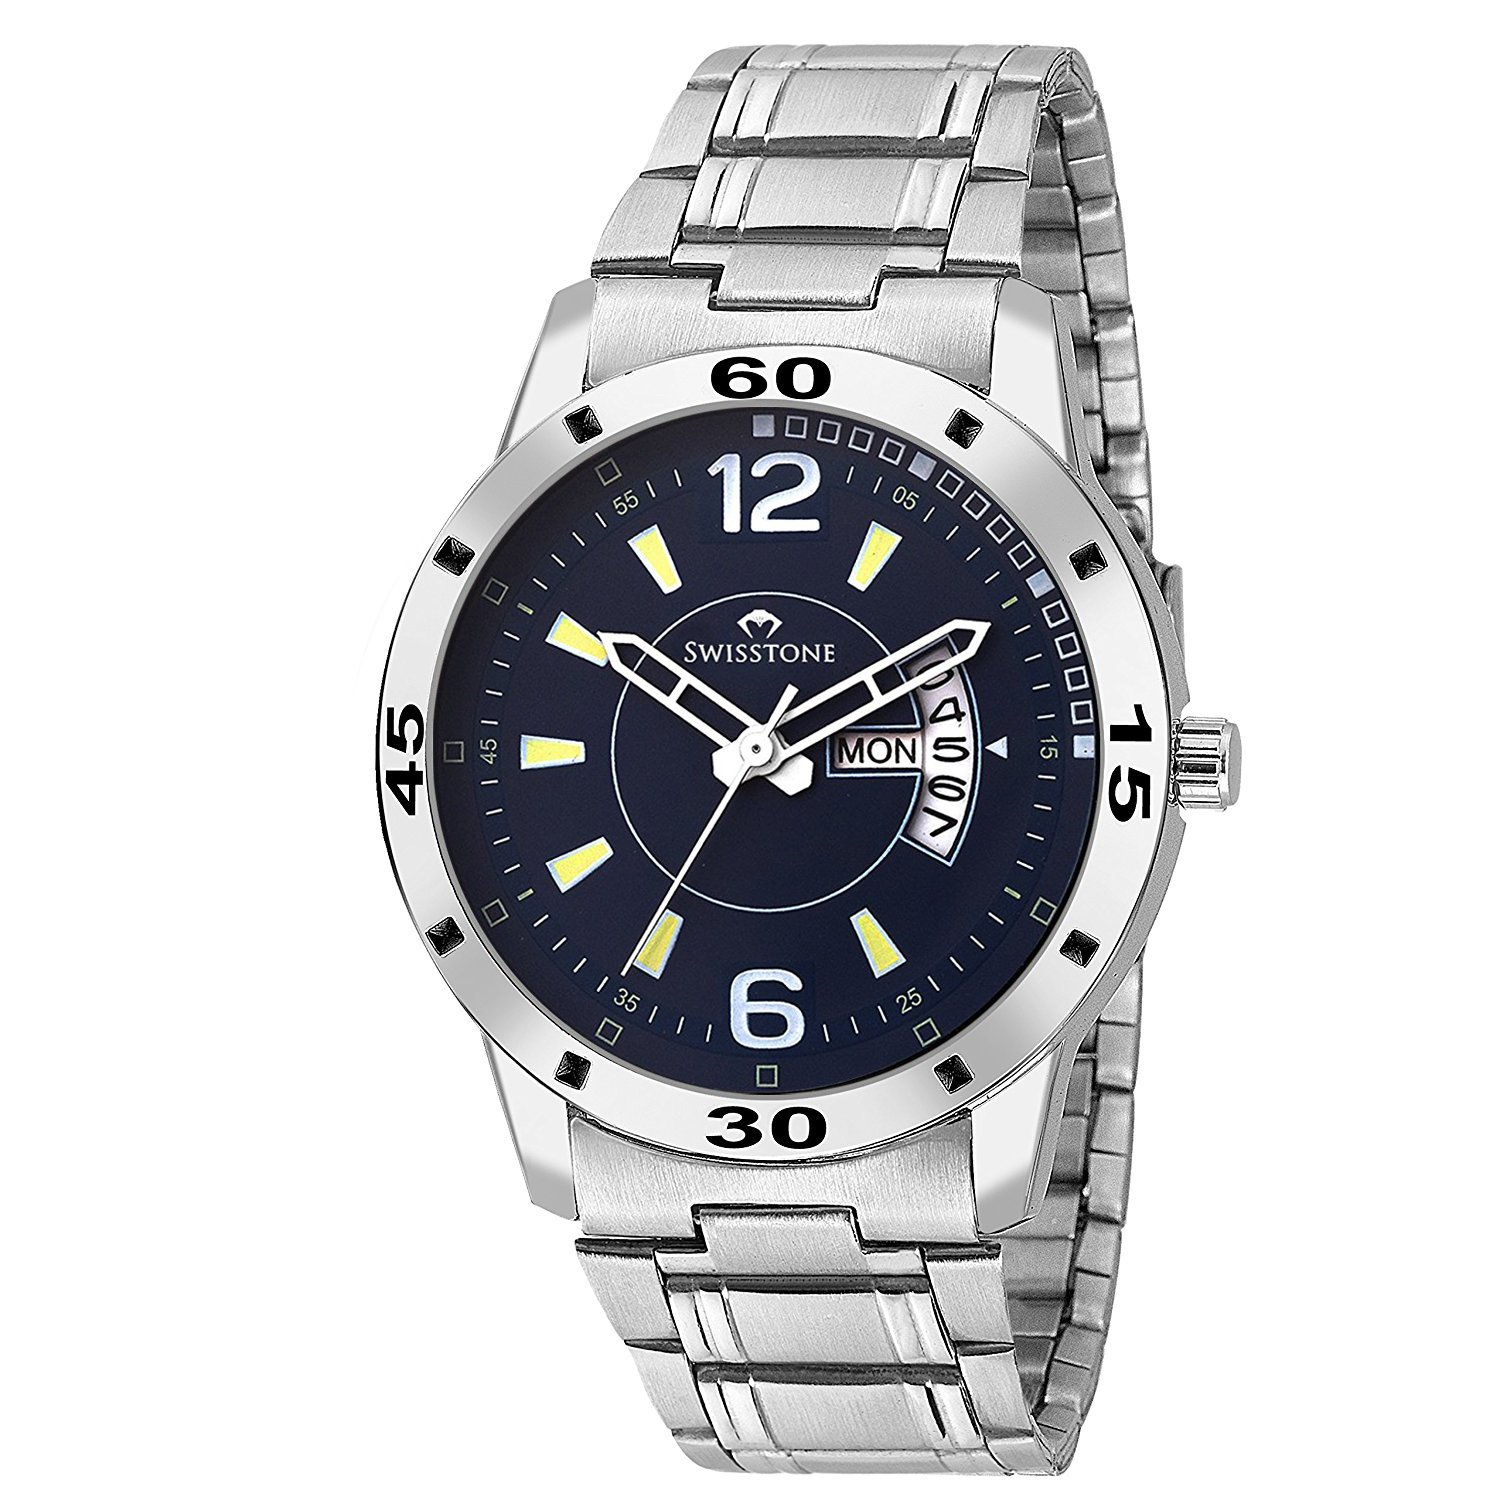 Swisstone G155-BLU Day and Date Display Stainless Steel Chain Wrist Watch for Men